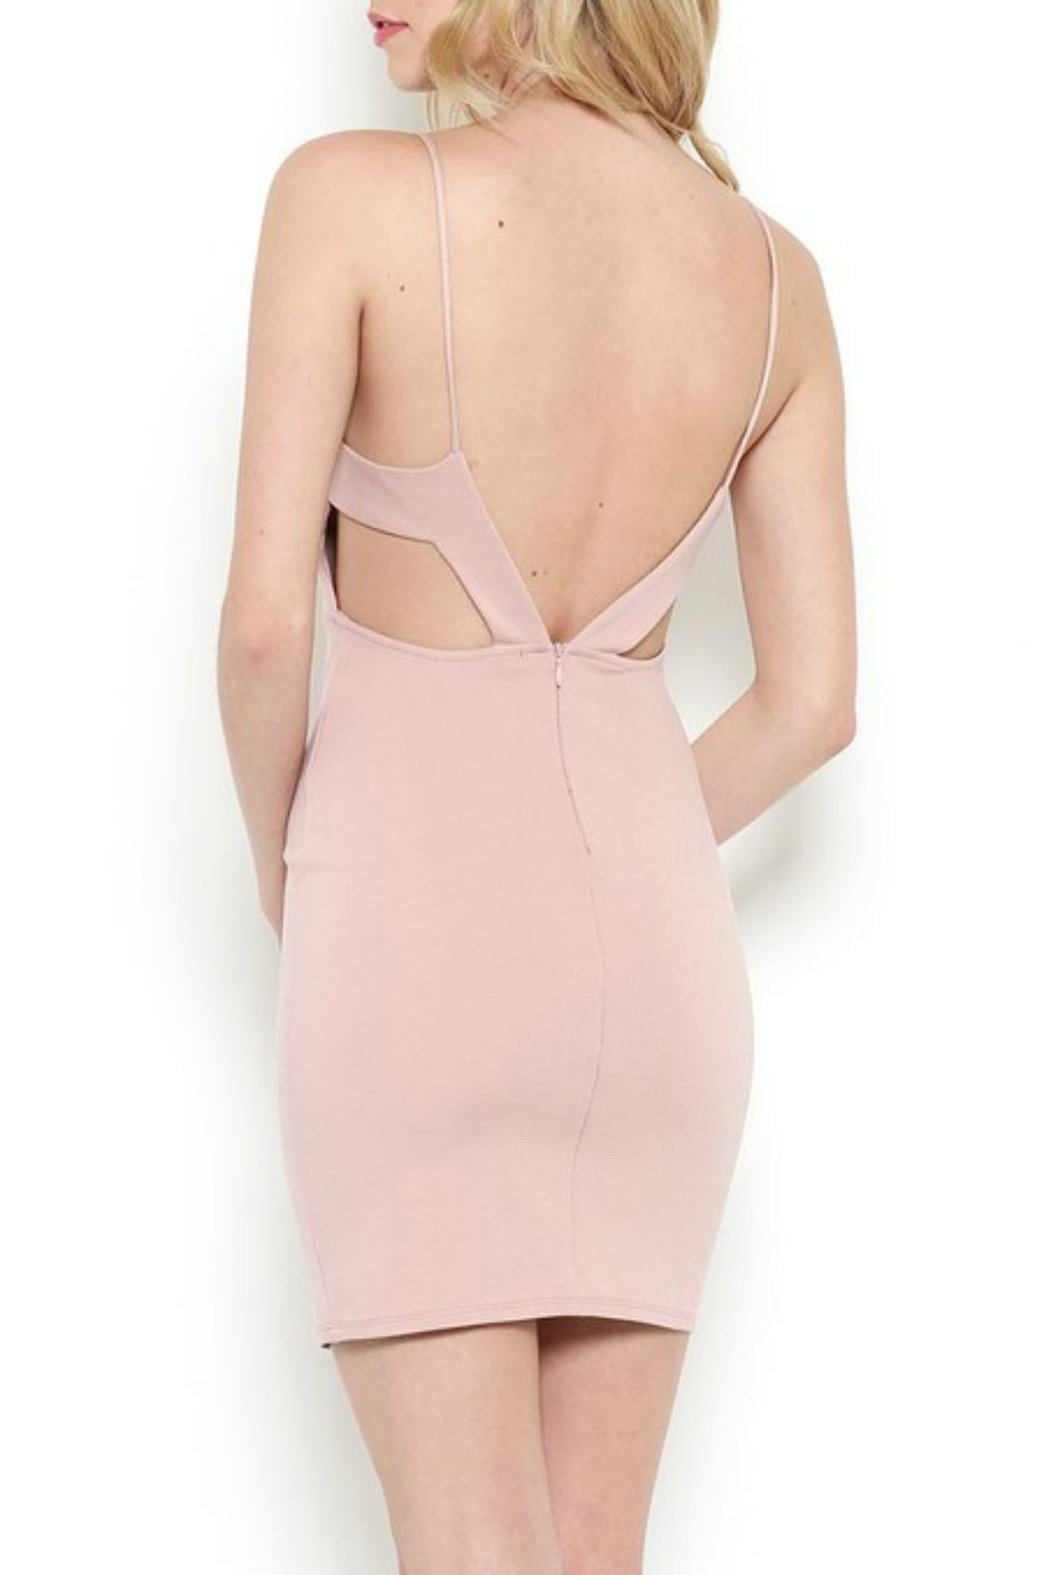 Pretty Little Things Blush Peekaboo Dress - Front Full Image